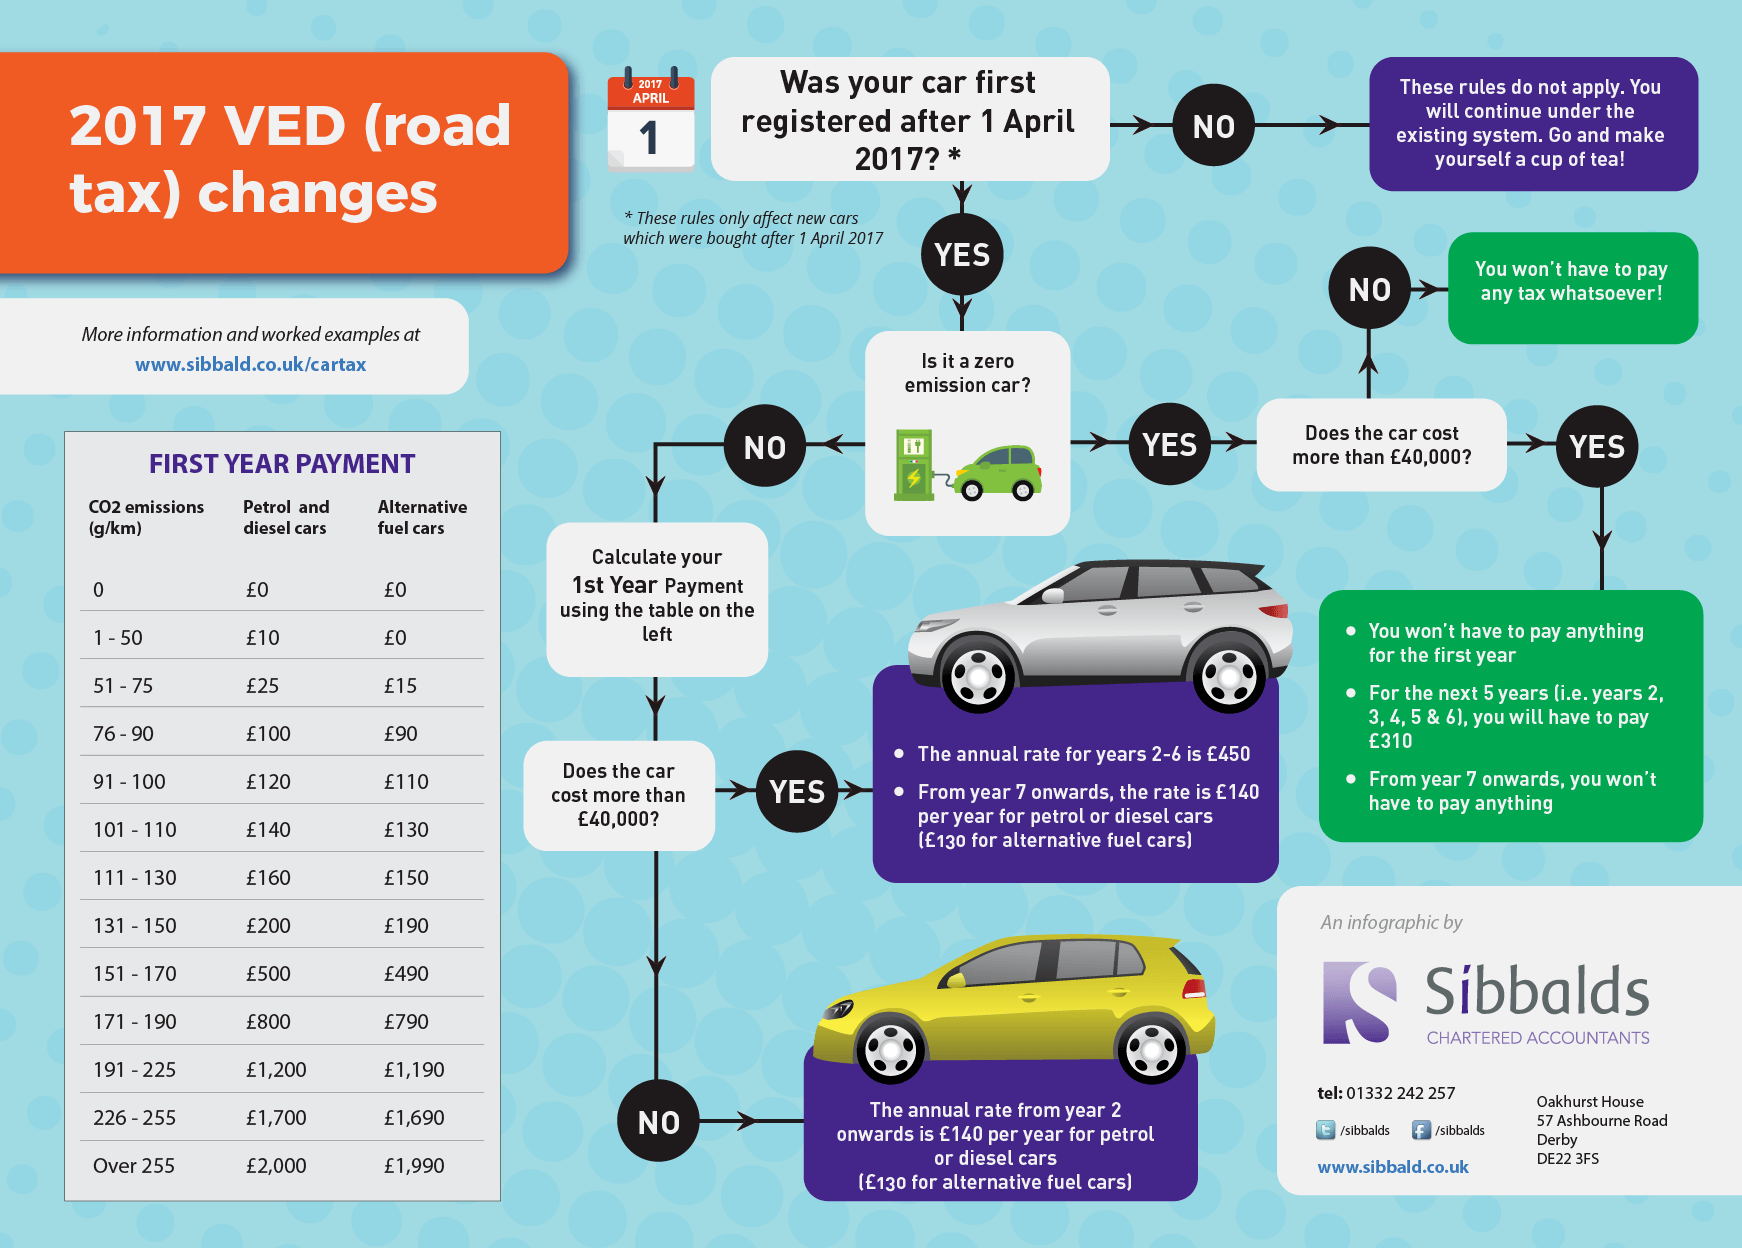 VED road tax - Car Tax Calculator 2017 Infographic